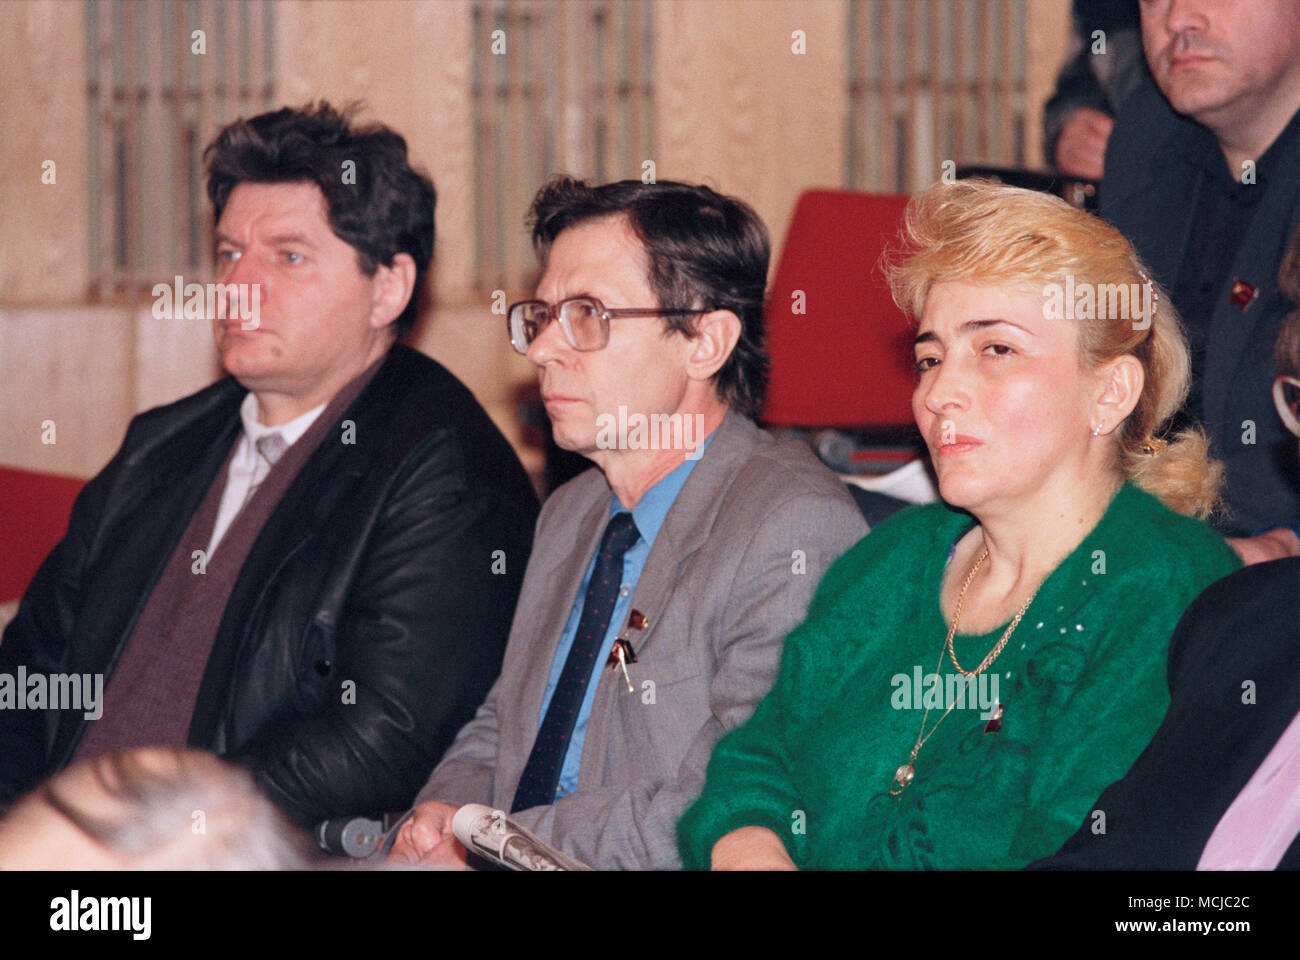 Moscow, Russia - February 22, 1992: Constituent congress of All-Russian Patriotic Movement 'Otchizna' (Fatherland). Members of the movement from left to right: Viktor Imantovich Alksnis, Alexander Nikolaevich Kraiko, Sazhi Zaindinovna Umalatova. - Stock Image